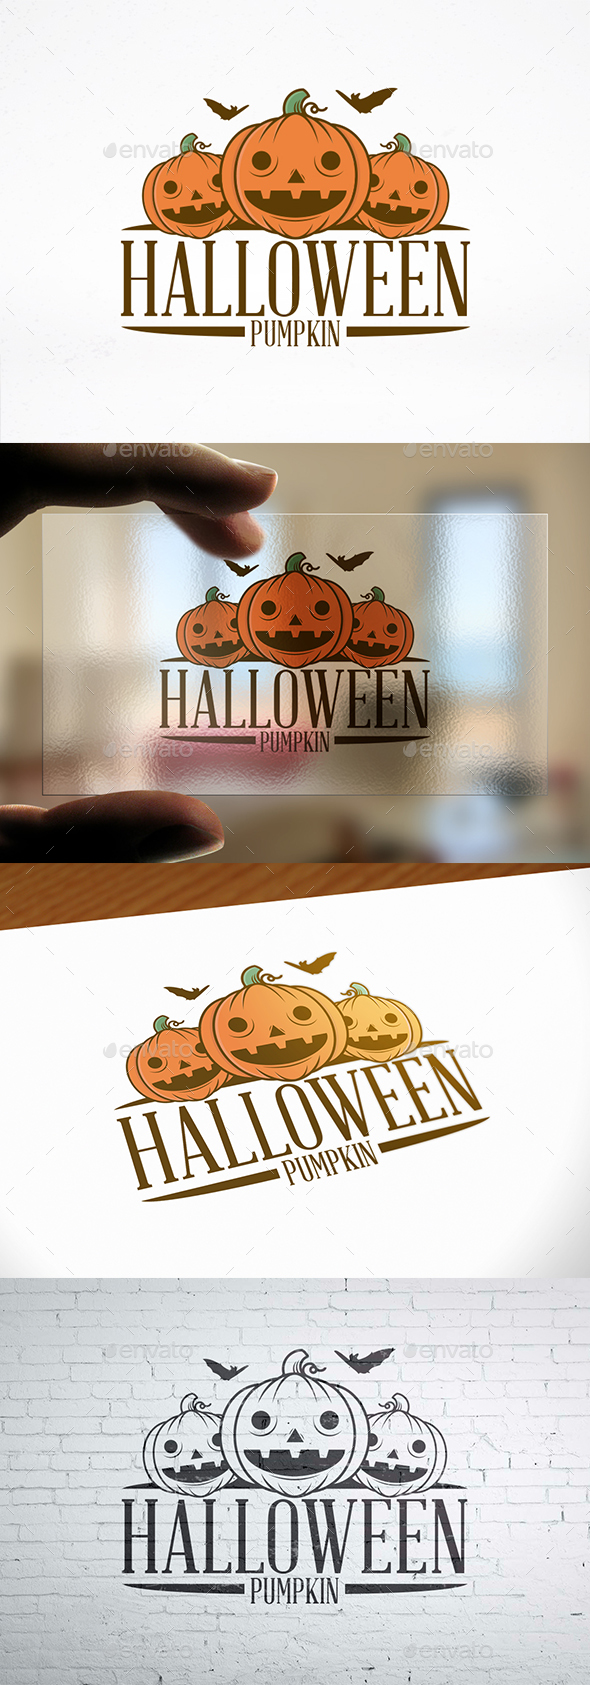 Halloween Pumpkin Illustrative Logo - Objects Logo Templates